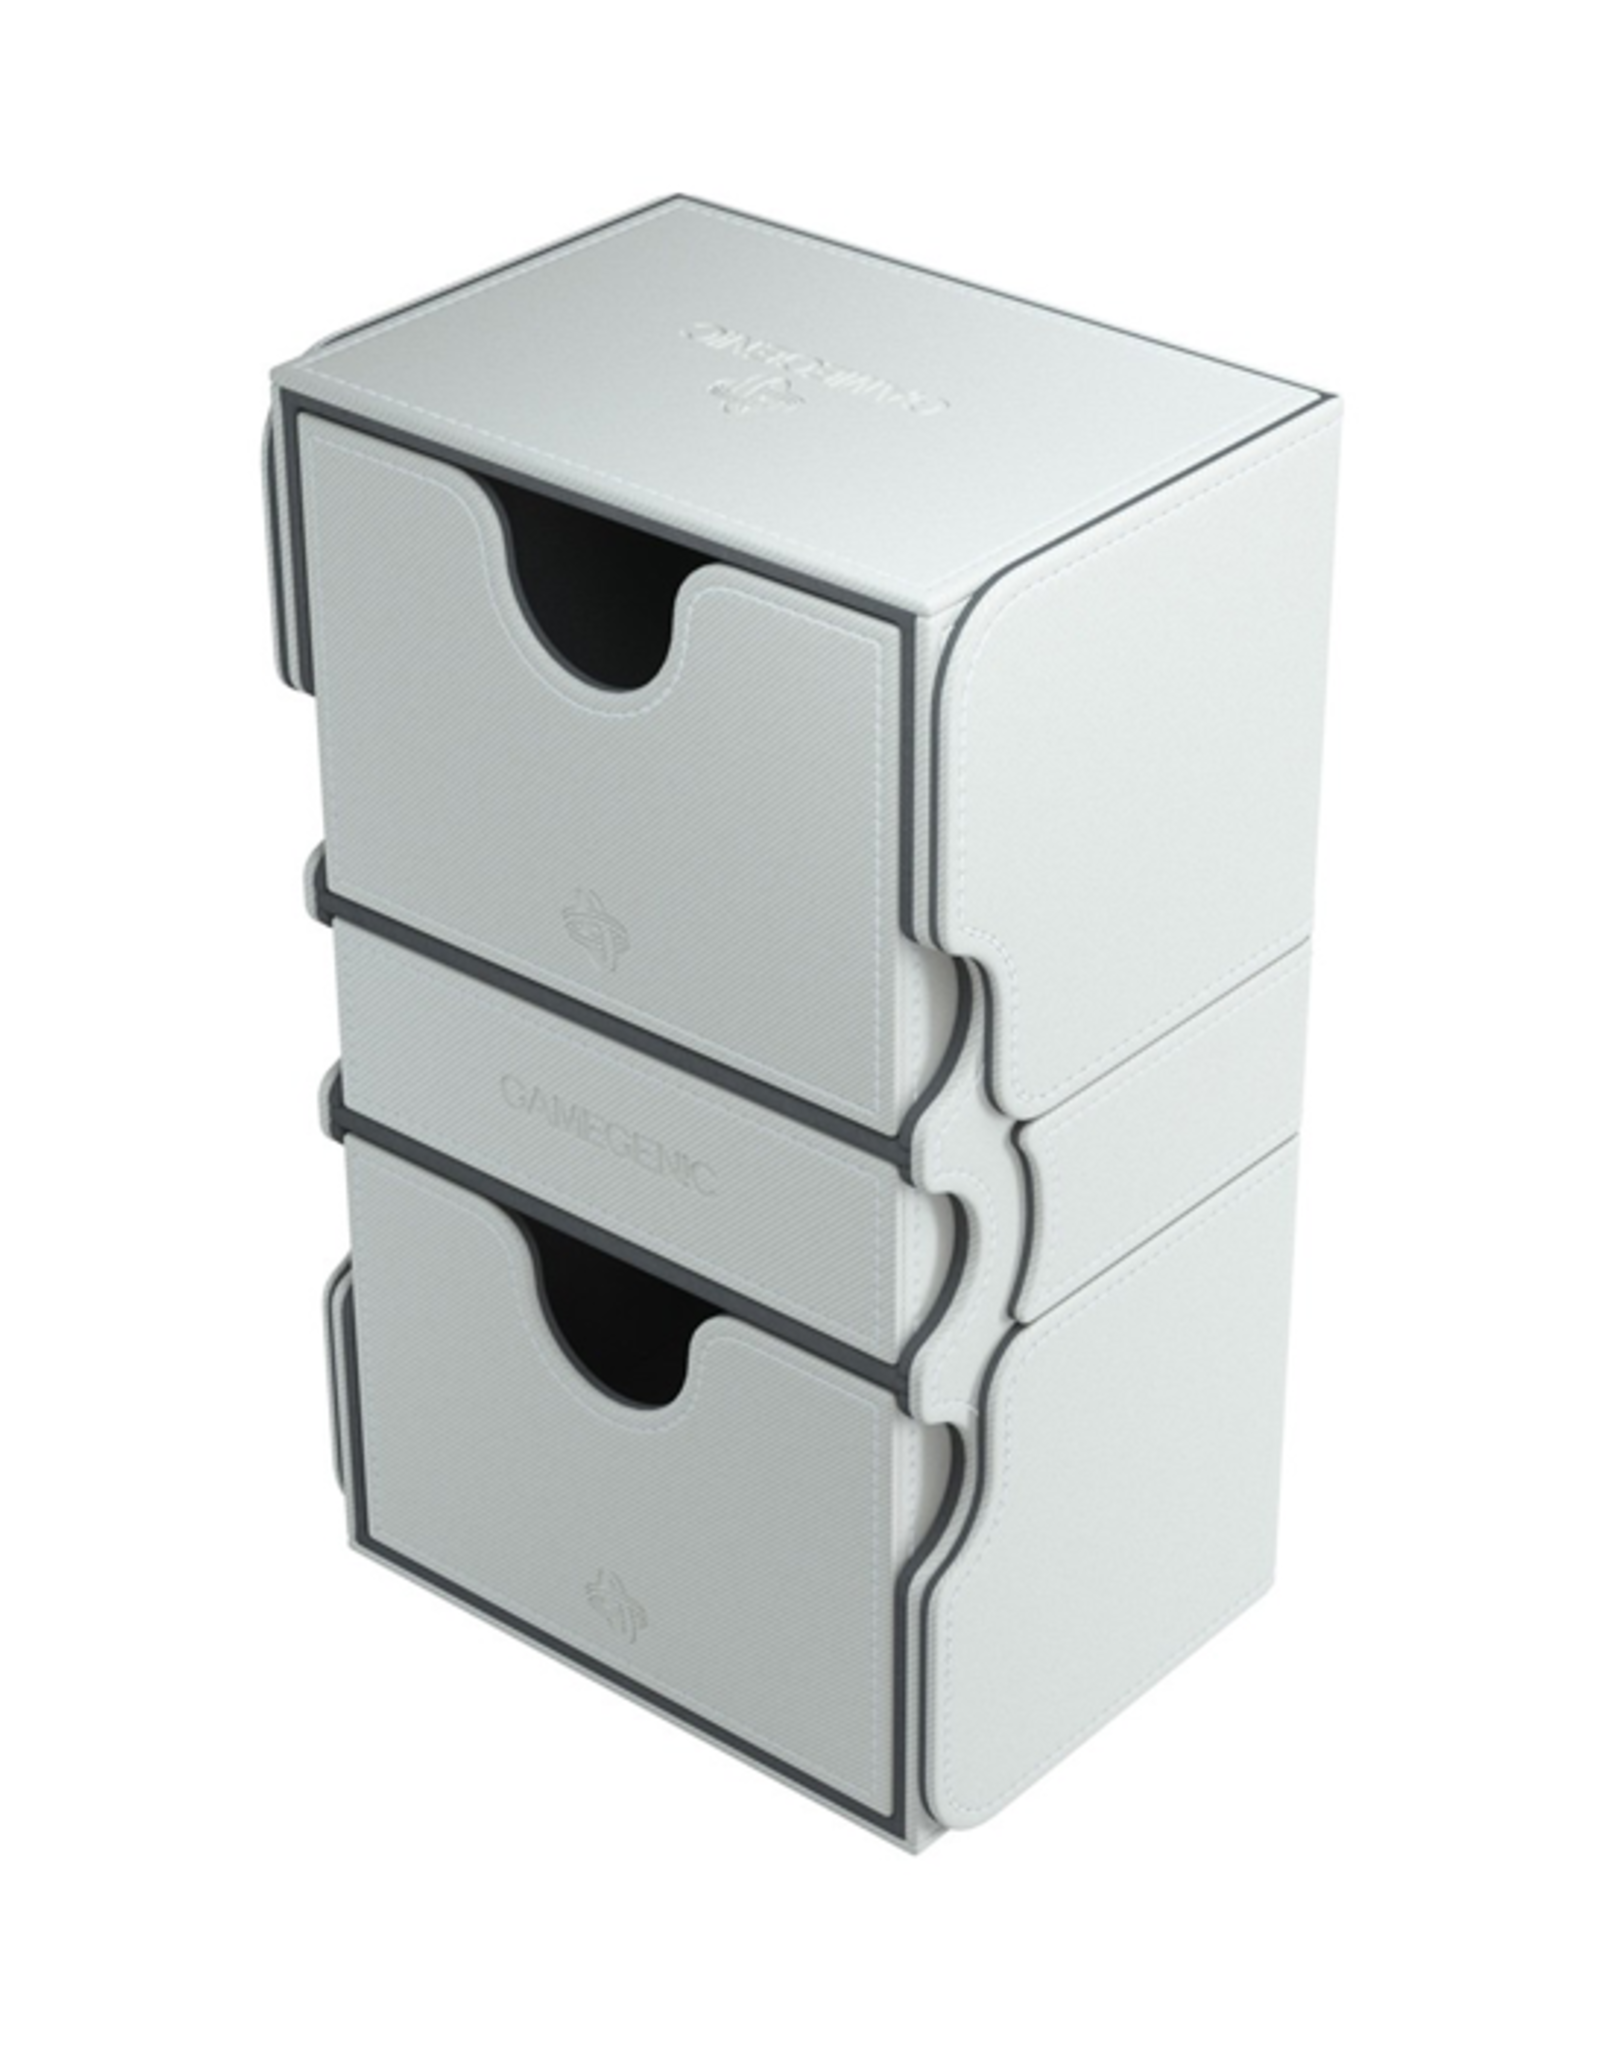 Gamegenic Gamegenic: Deck Box - Stronghold 200+ - White